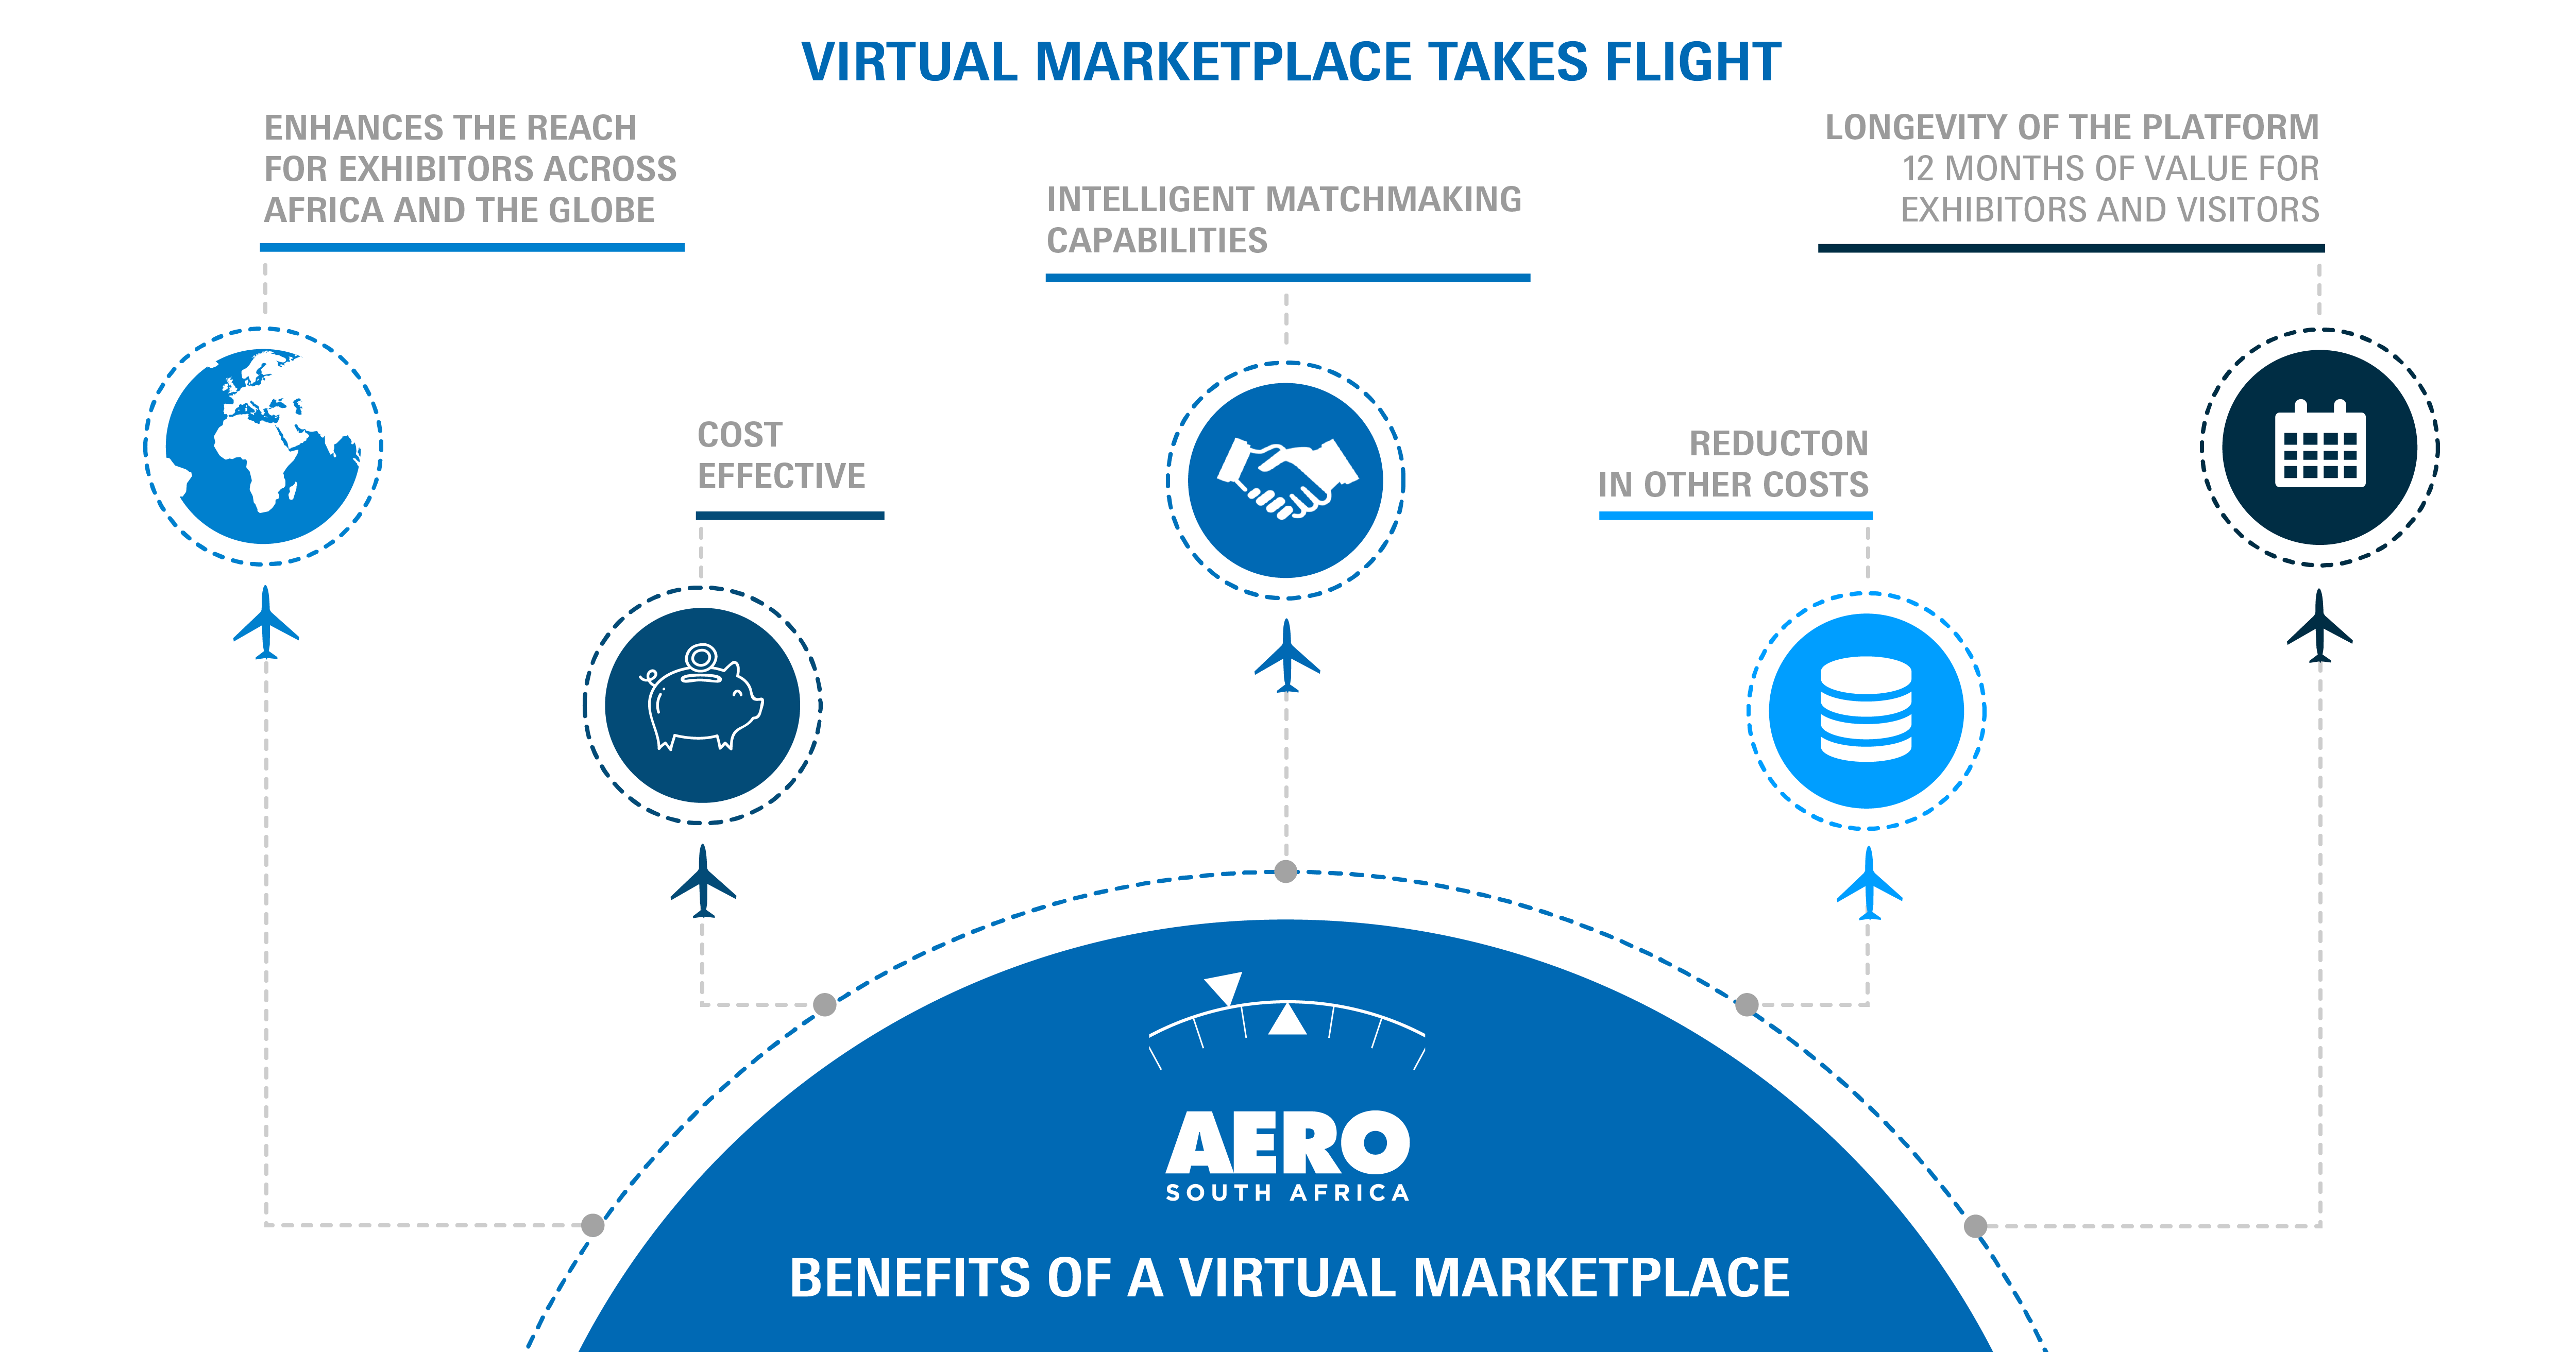 AERO South Africa Virtual Marketplace